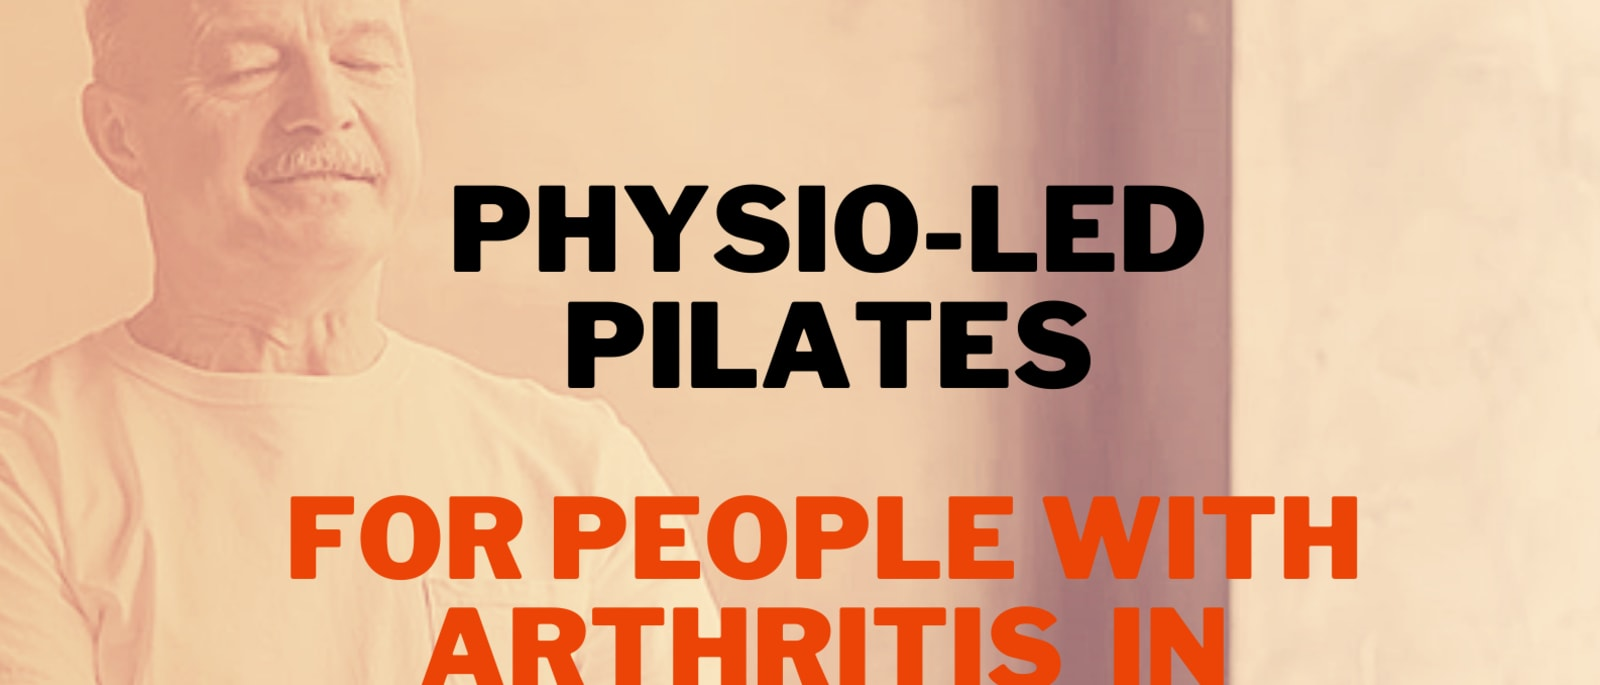 Physio-Led Adapted Pilates For People Living With Arthritis In Galway City and County